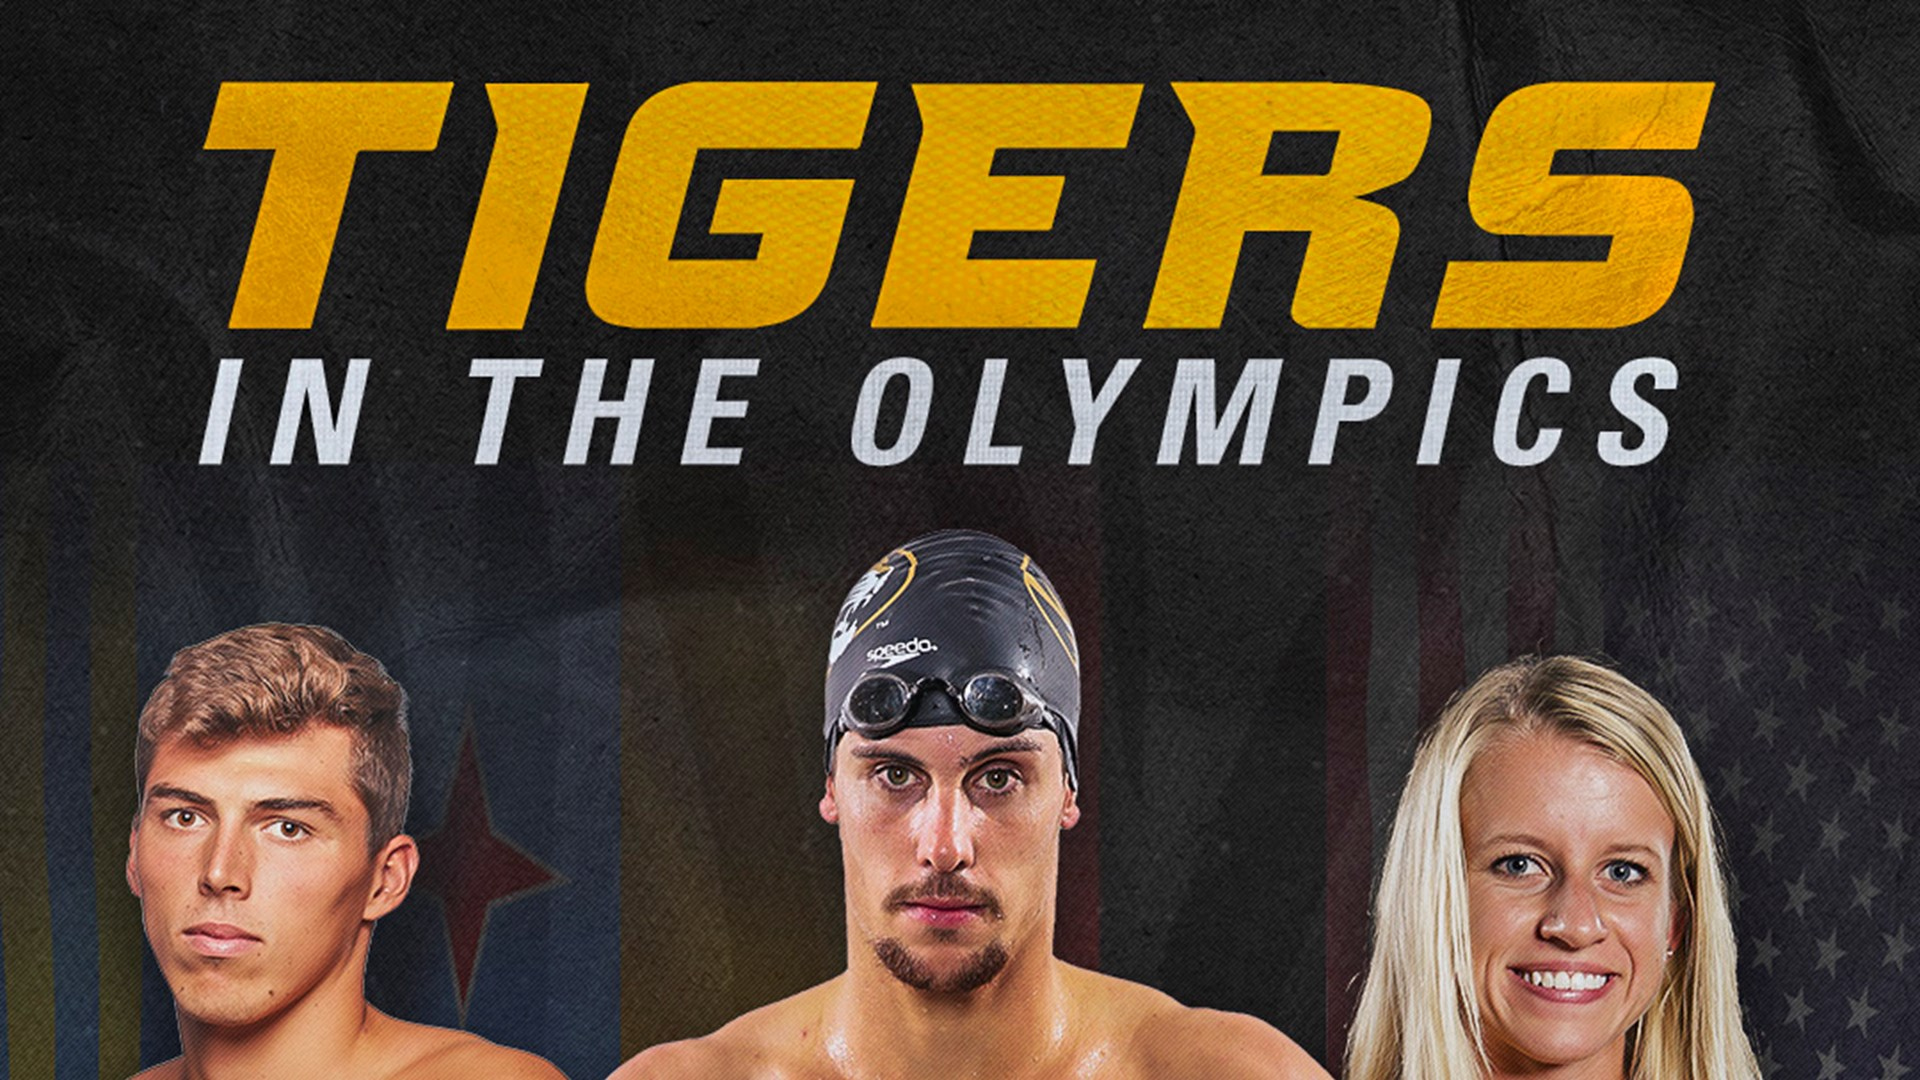 Tigers in the Olympics